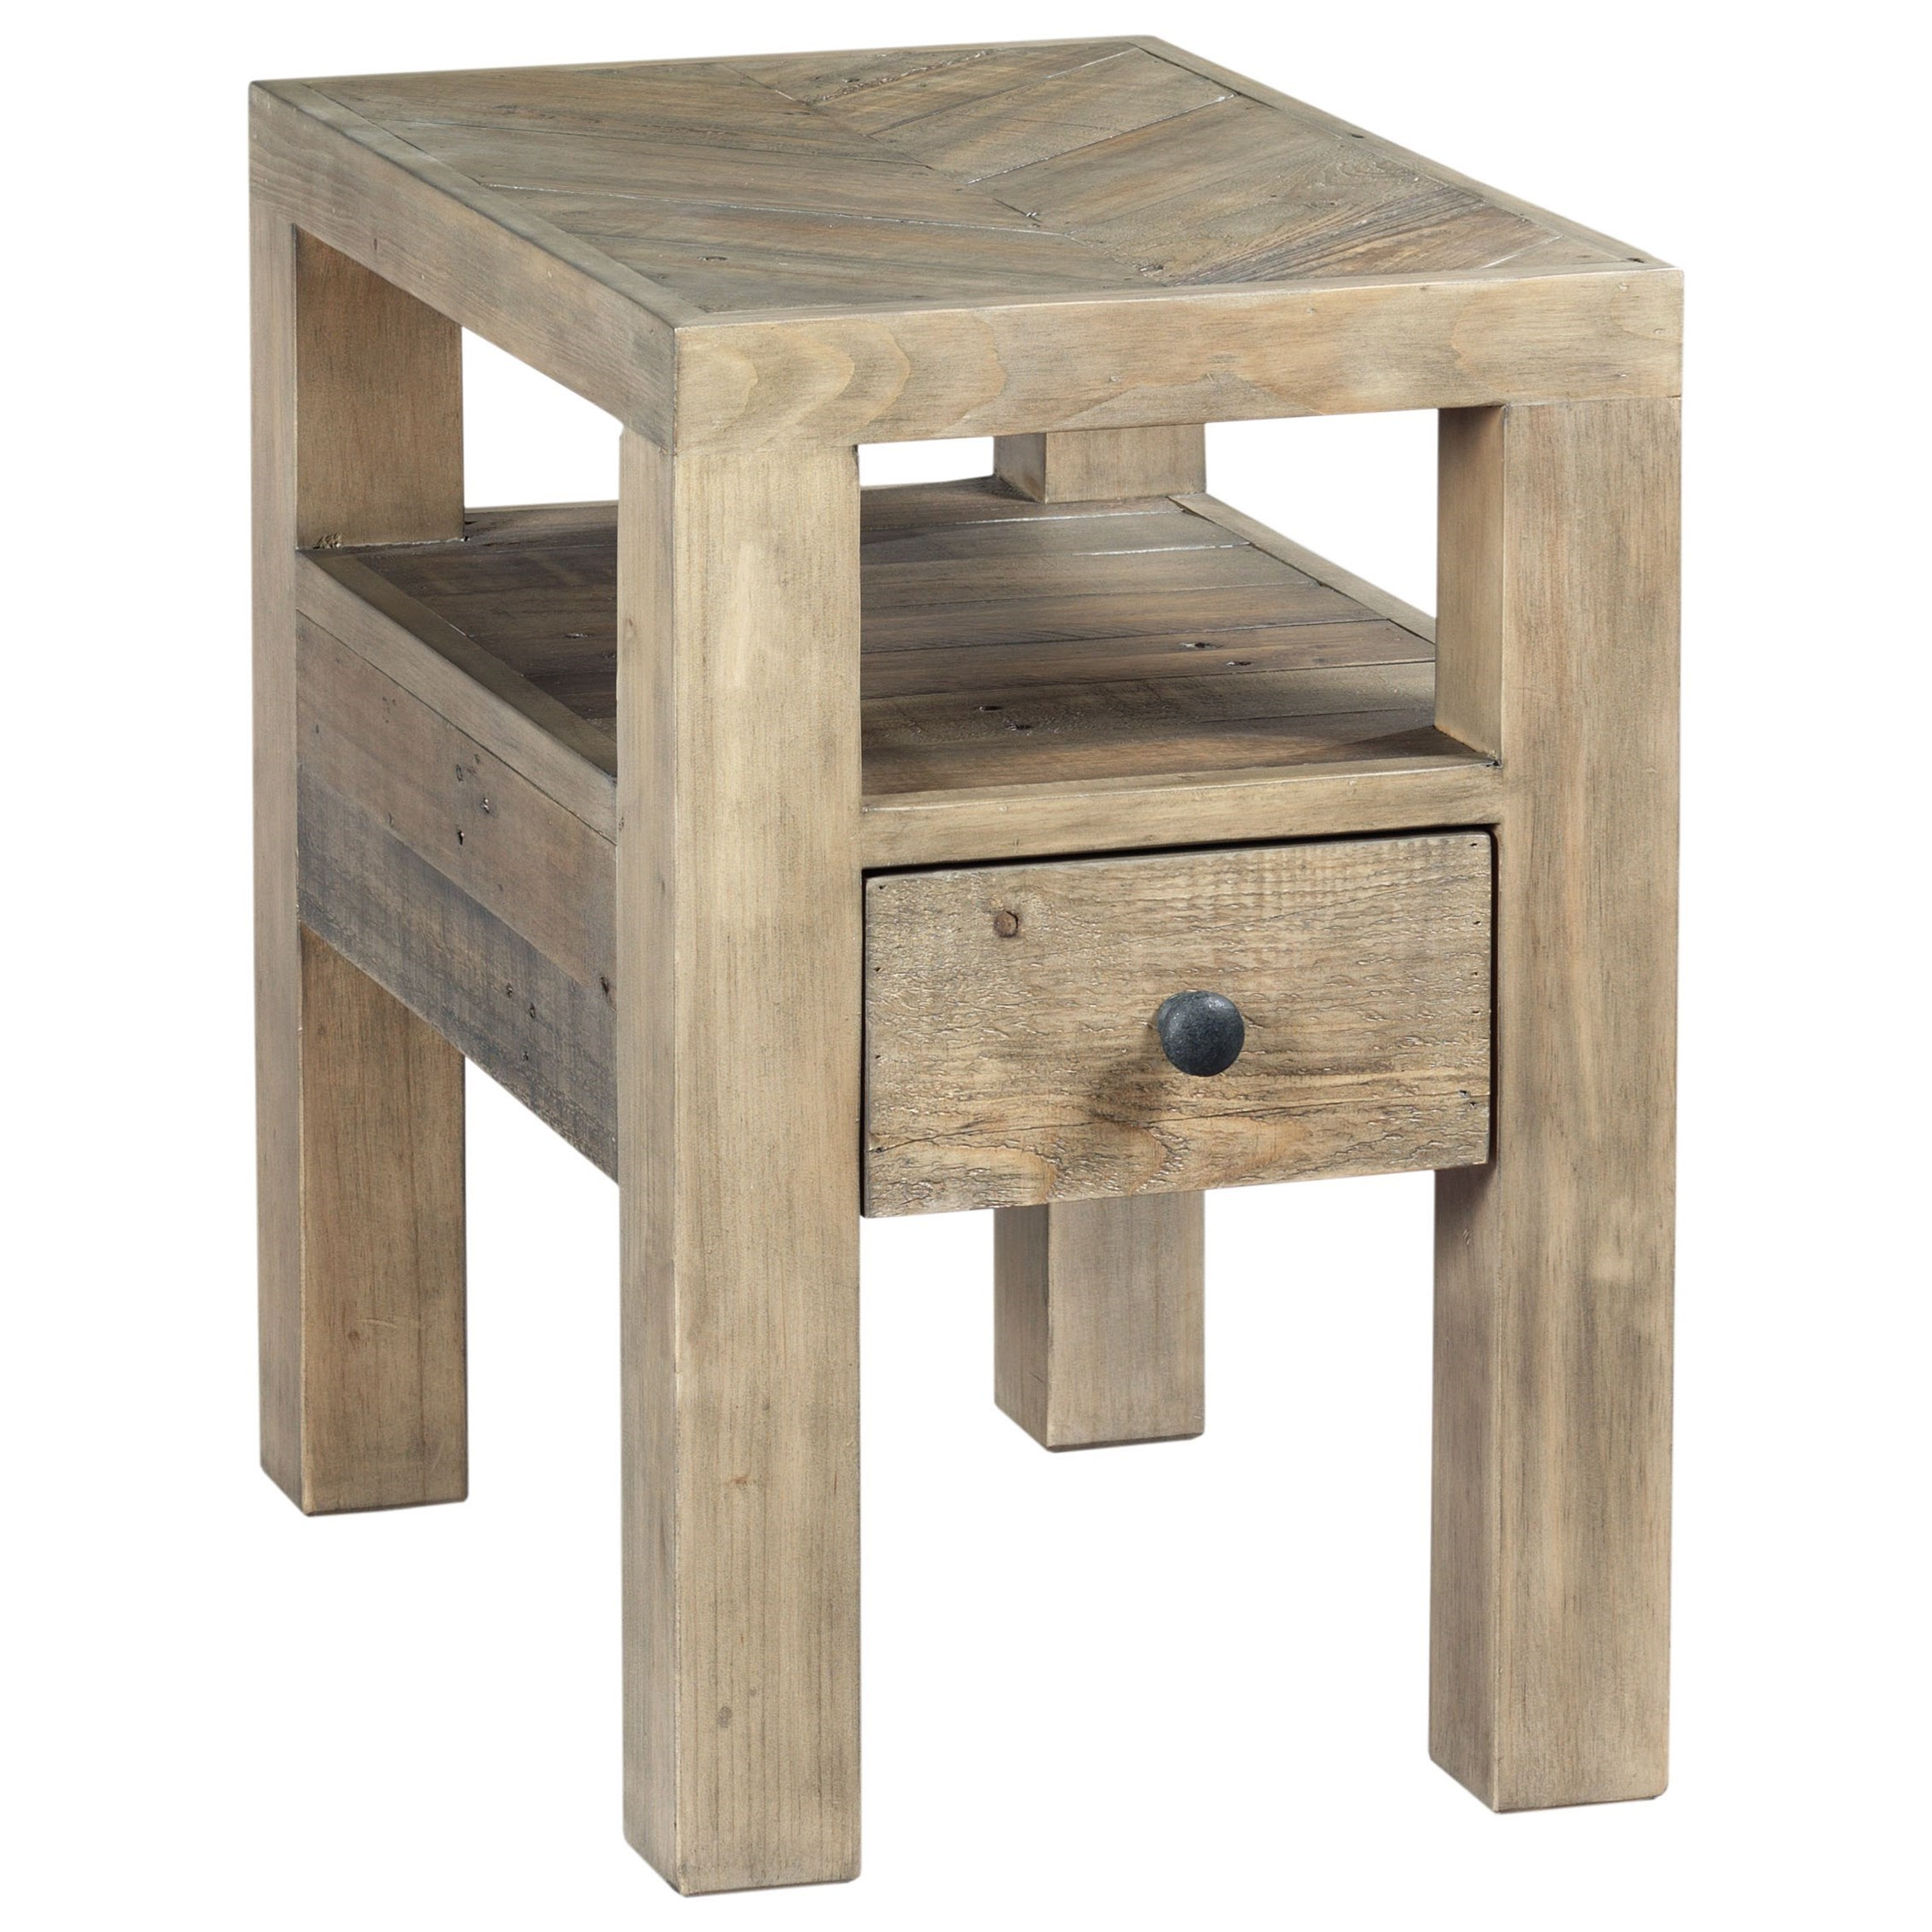 Reclamation Place Chairside Table by Hammary at Red Knot